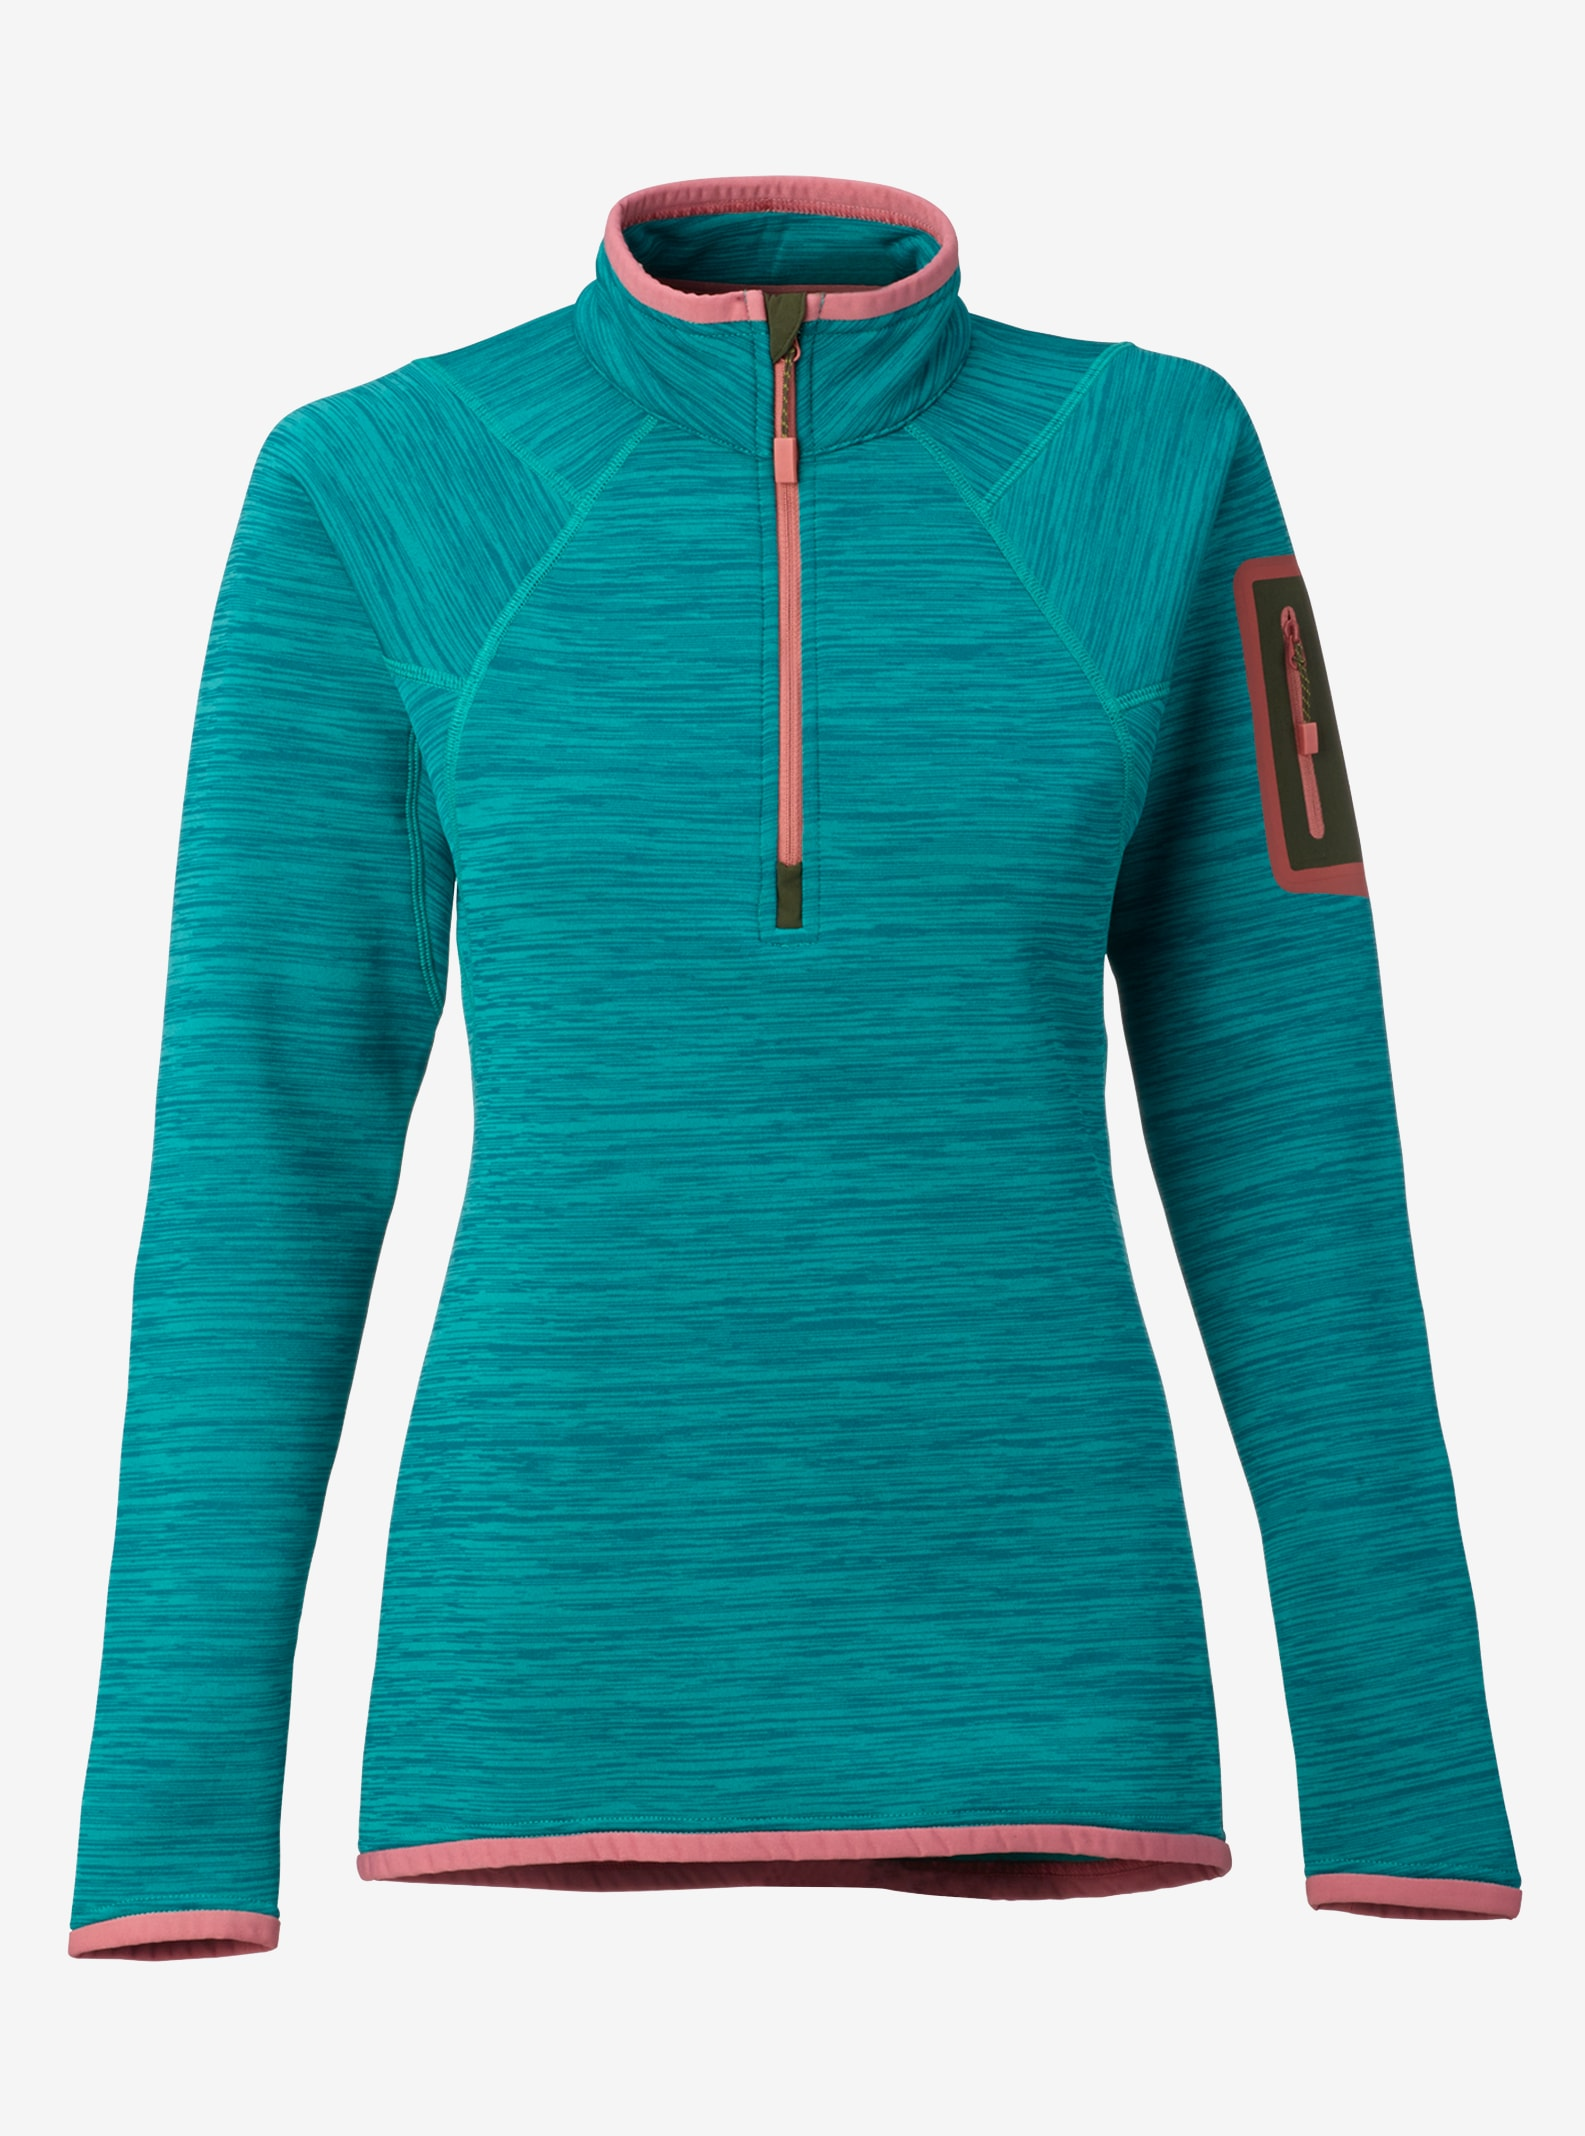 Women's Burton [ak] Turbine Half Zip Fleece shown in Spectra